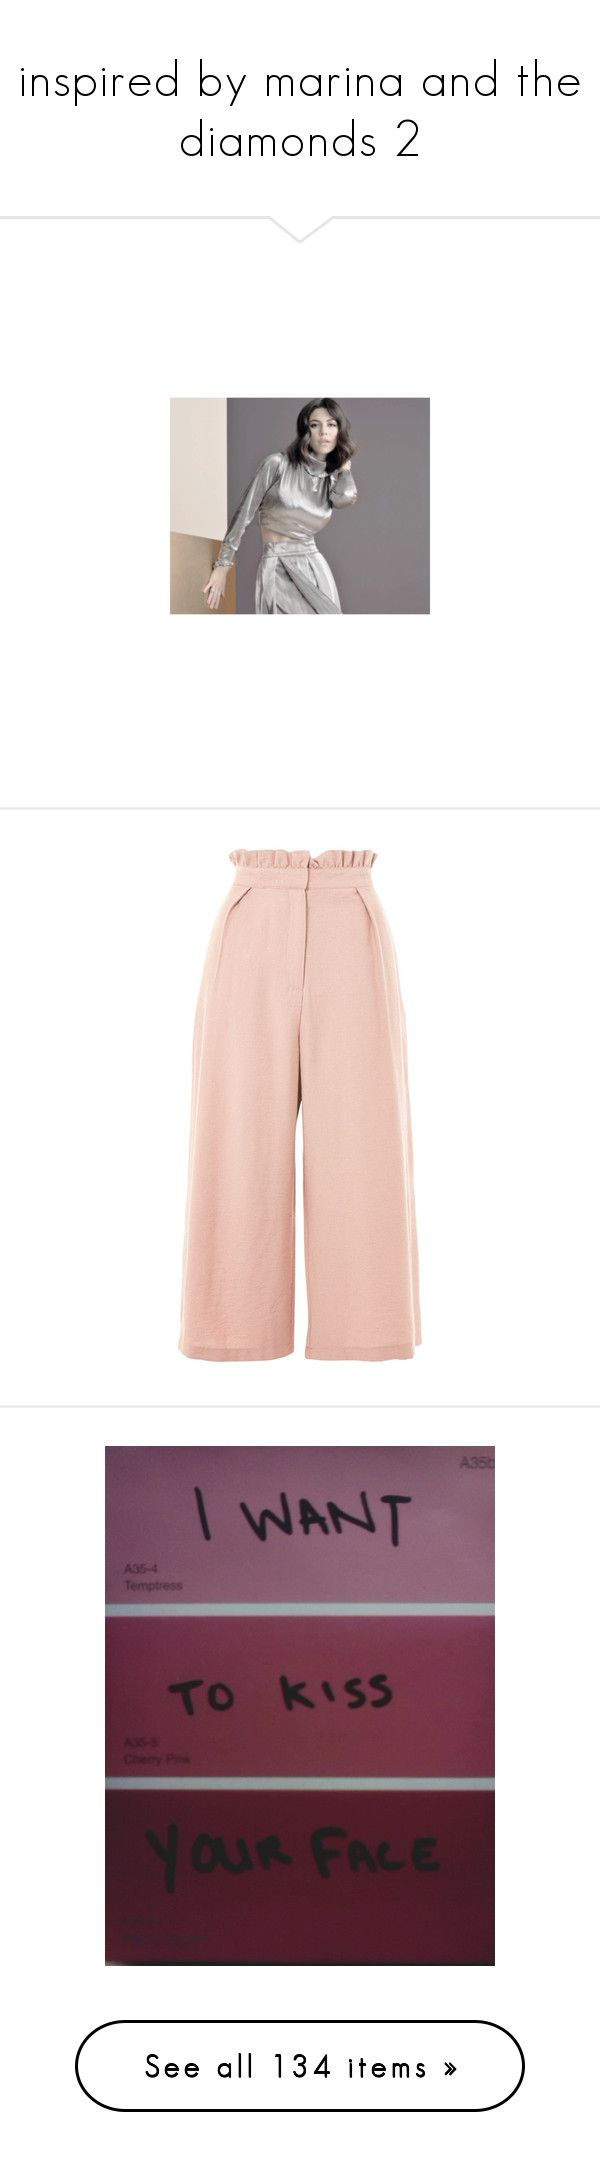 """""""inspired by marina and the diamonds 2"""" by gb041112 ❤ liked on Polyvore featuring pictures, pants, bottoms, trousers, dusty pink, striped trousers, striped wide leg pants, striped wide leg trousers, pink wide leg pants and pink wide leg trousers"""